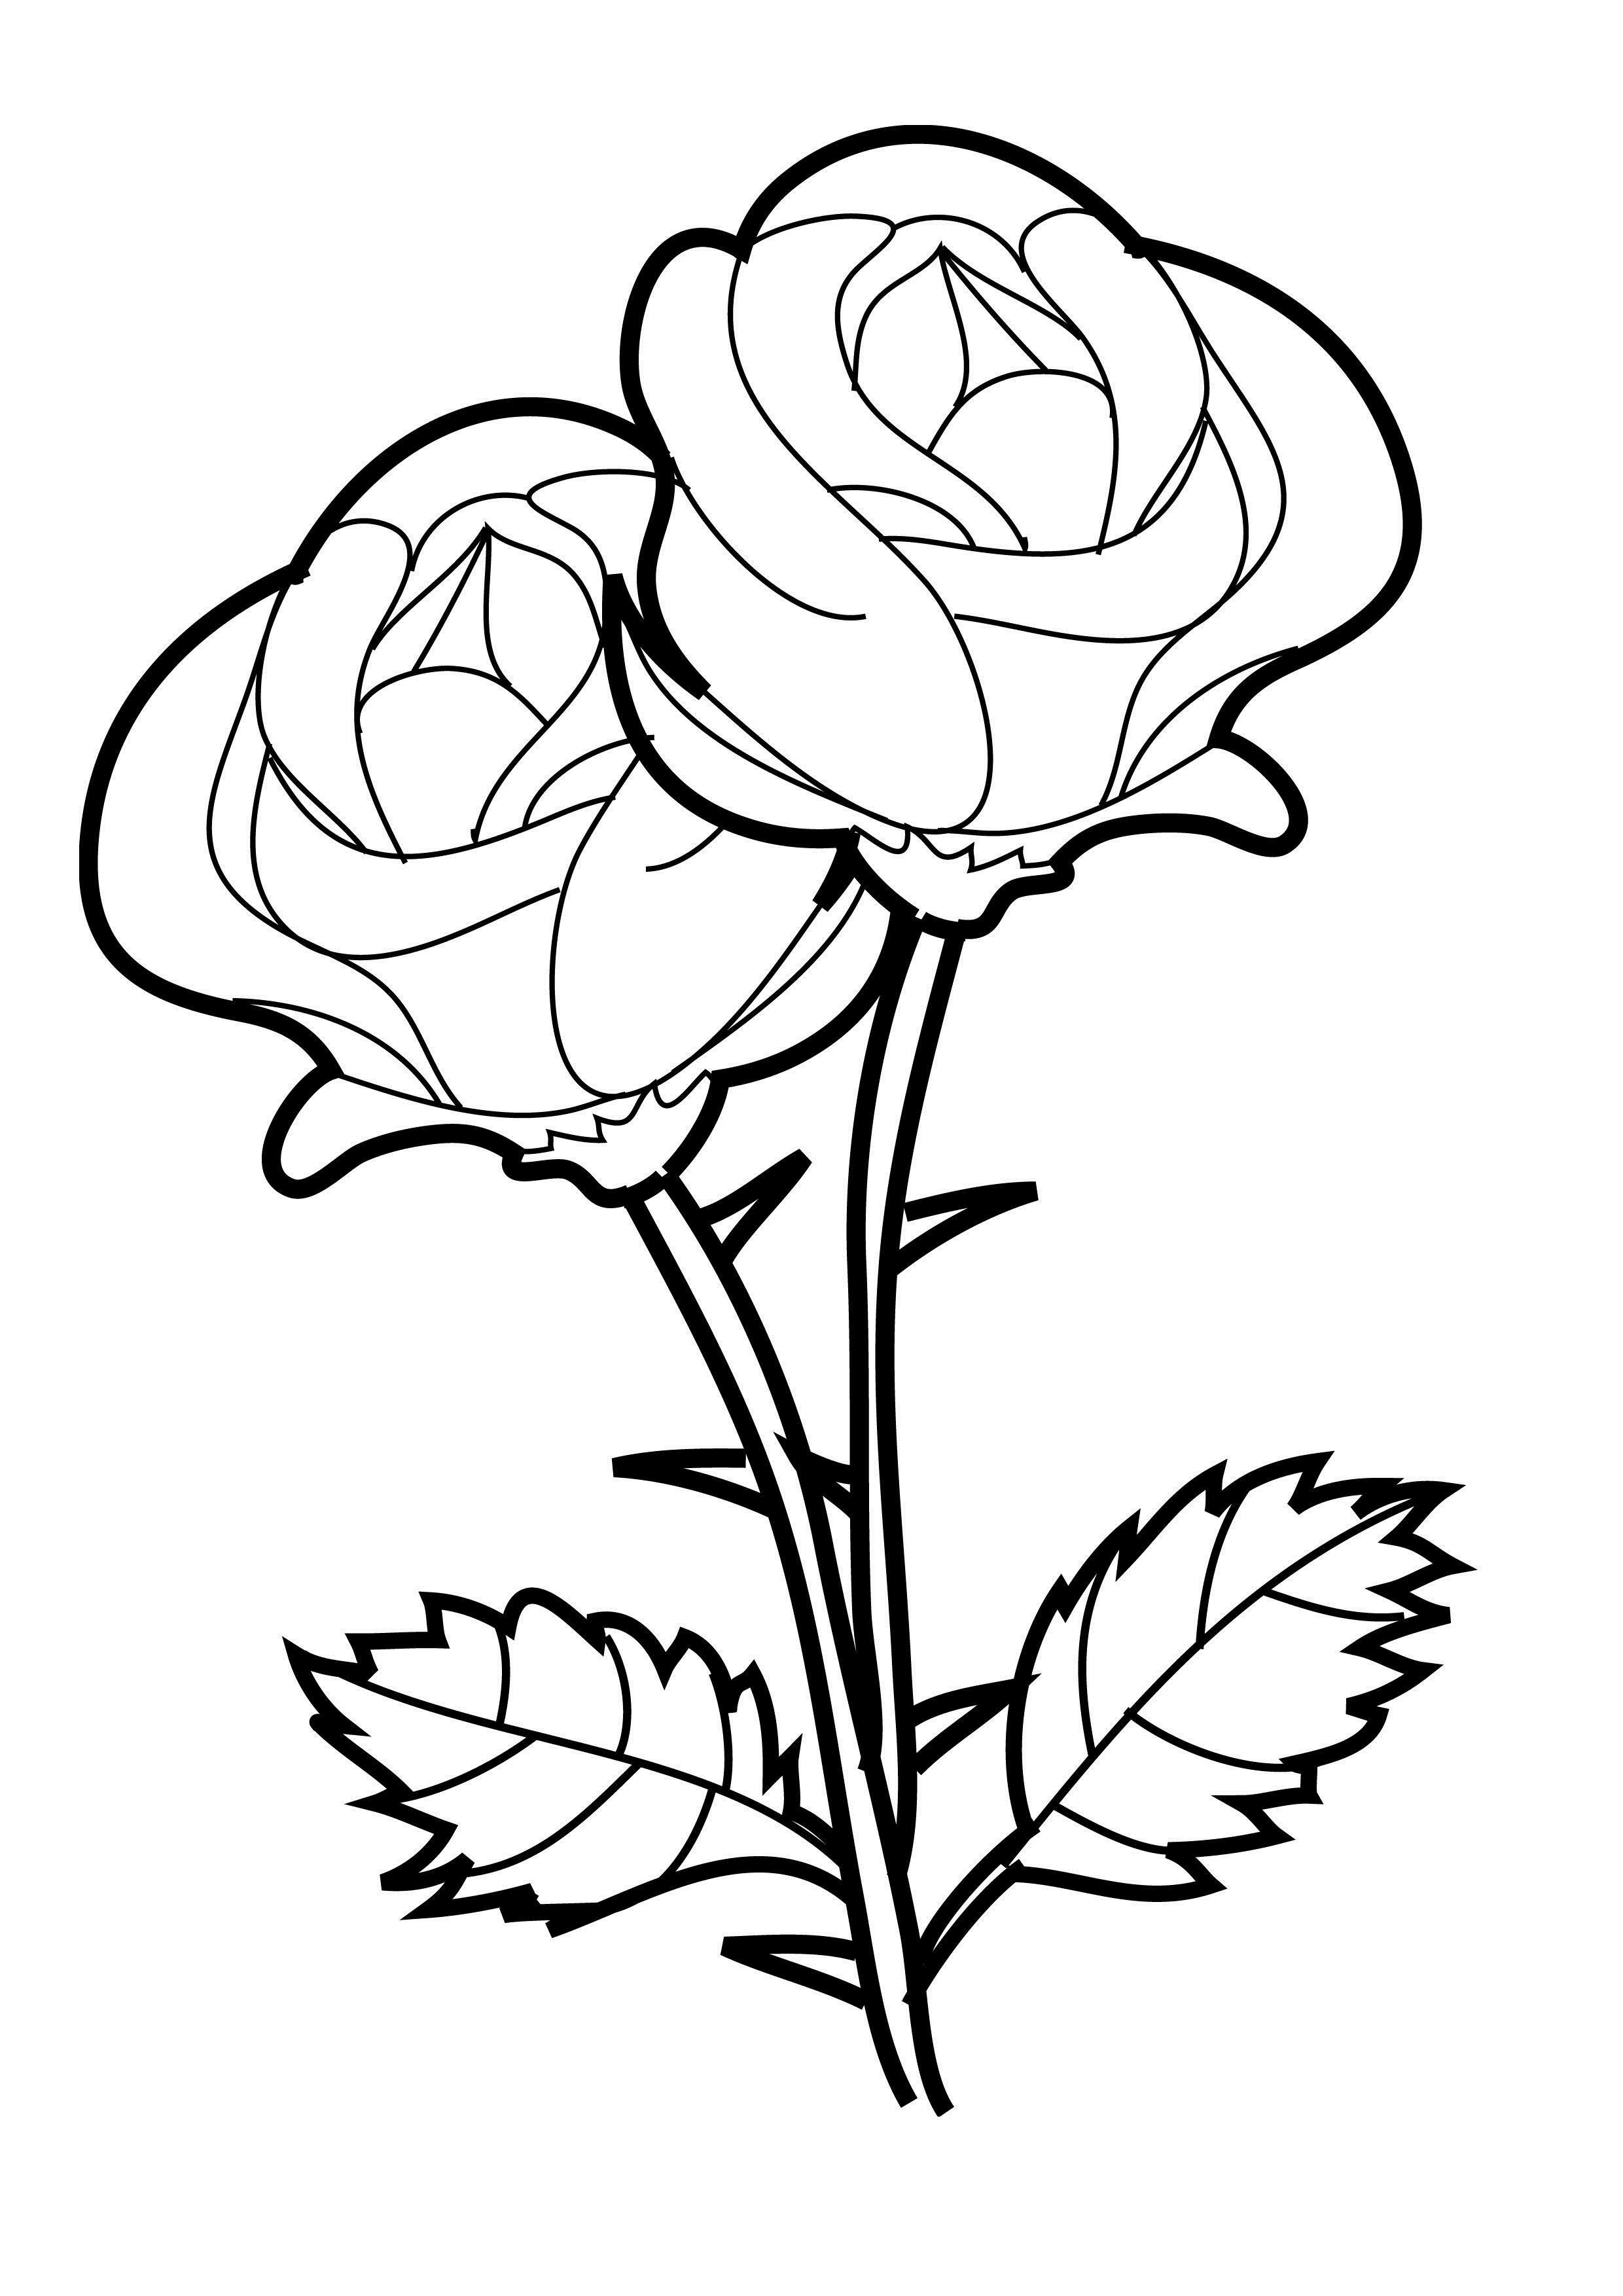 rose flower coloring pages roses coloring pages to download and print for free coloring pages rose flower